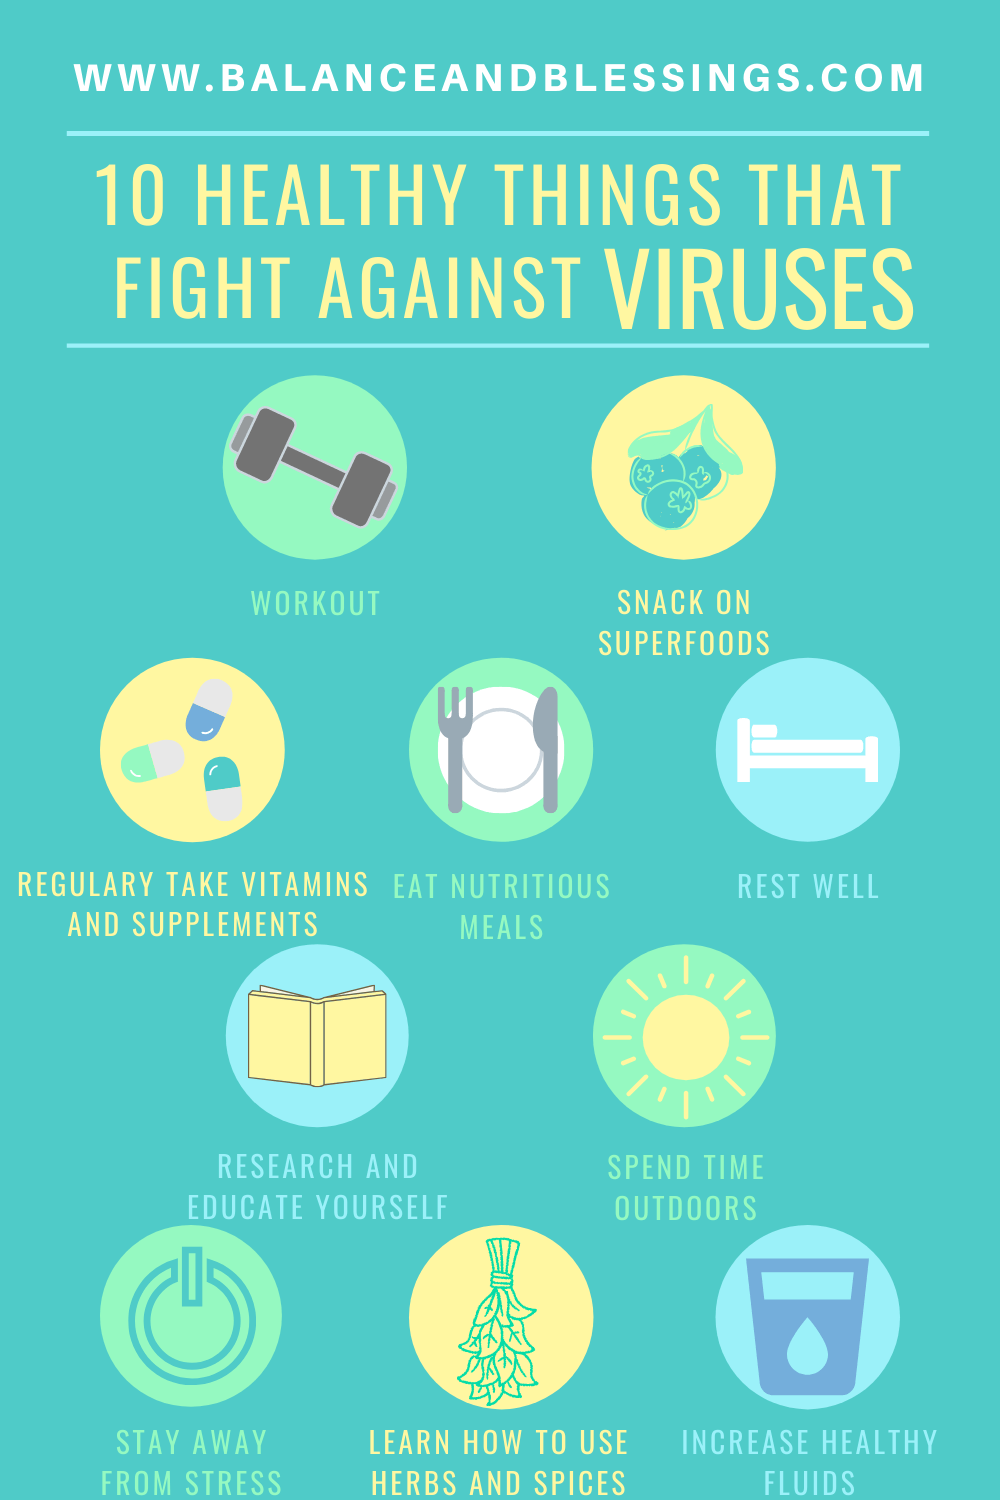 10 healthy things that fight against viruses you can do every day